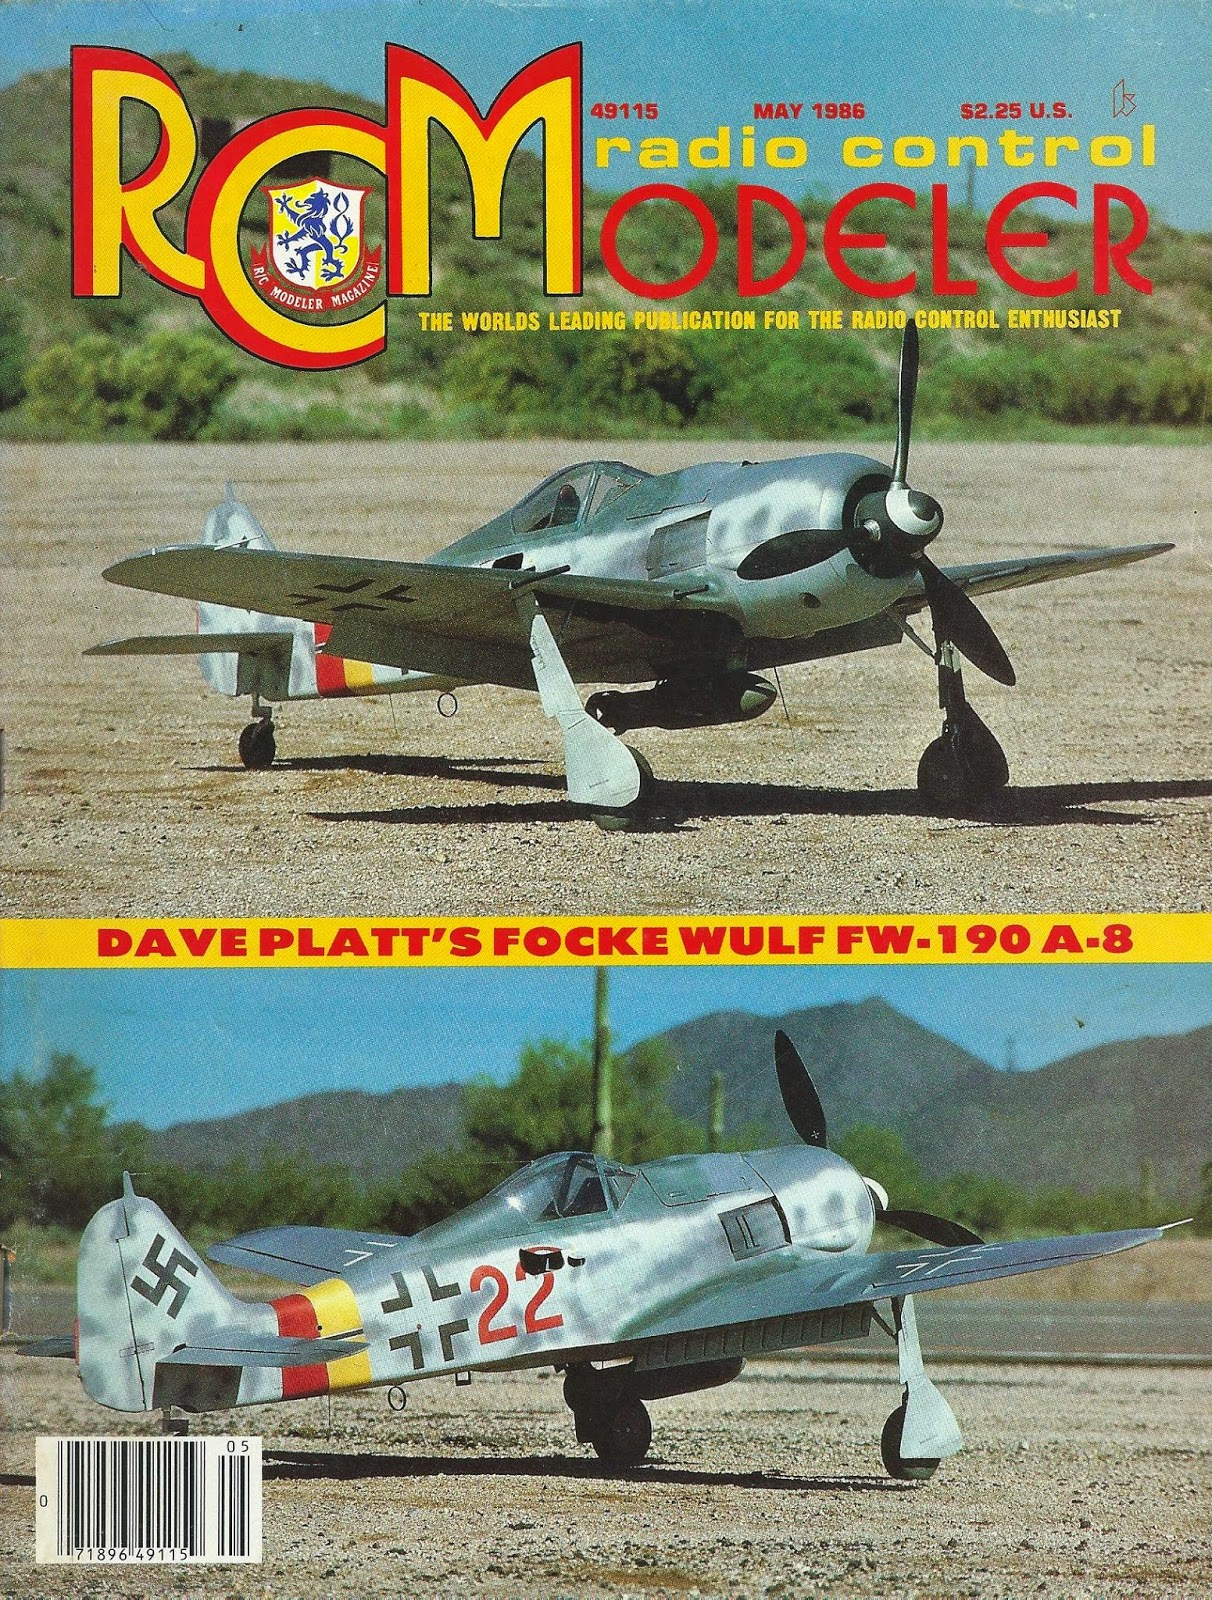 rcm *focke wulf fw-190 a-8* article and plan"